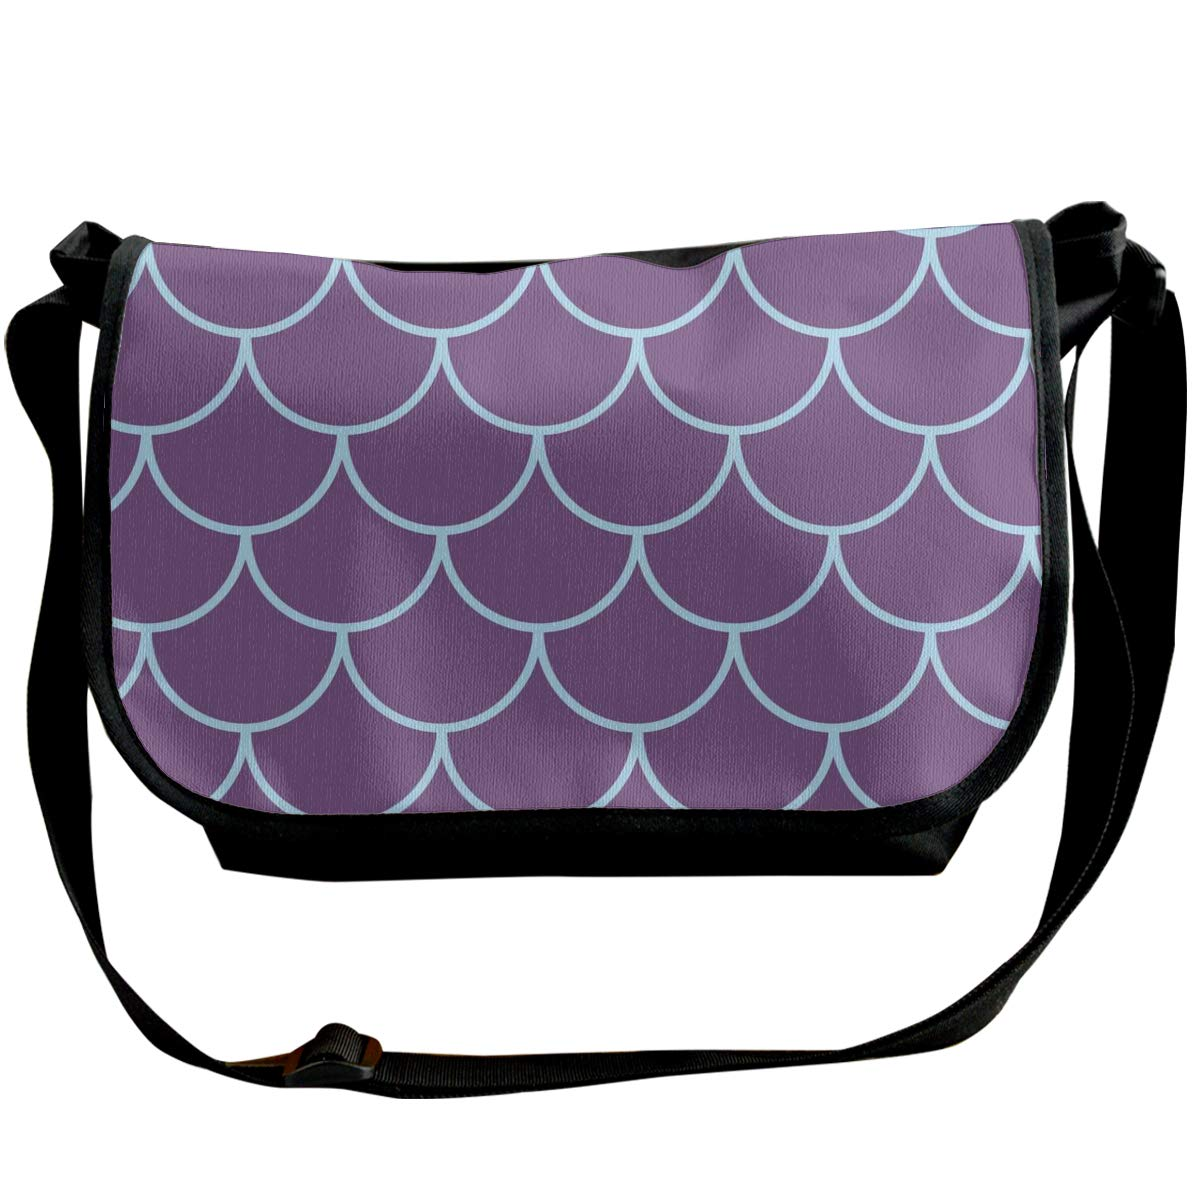 Taslilye Girl Mermaid Seamless Pattern Vector Image Customized Wide Crossbody Shoulder Bag For Men And Women For Daily Work Or Travel